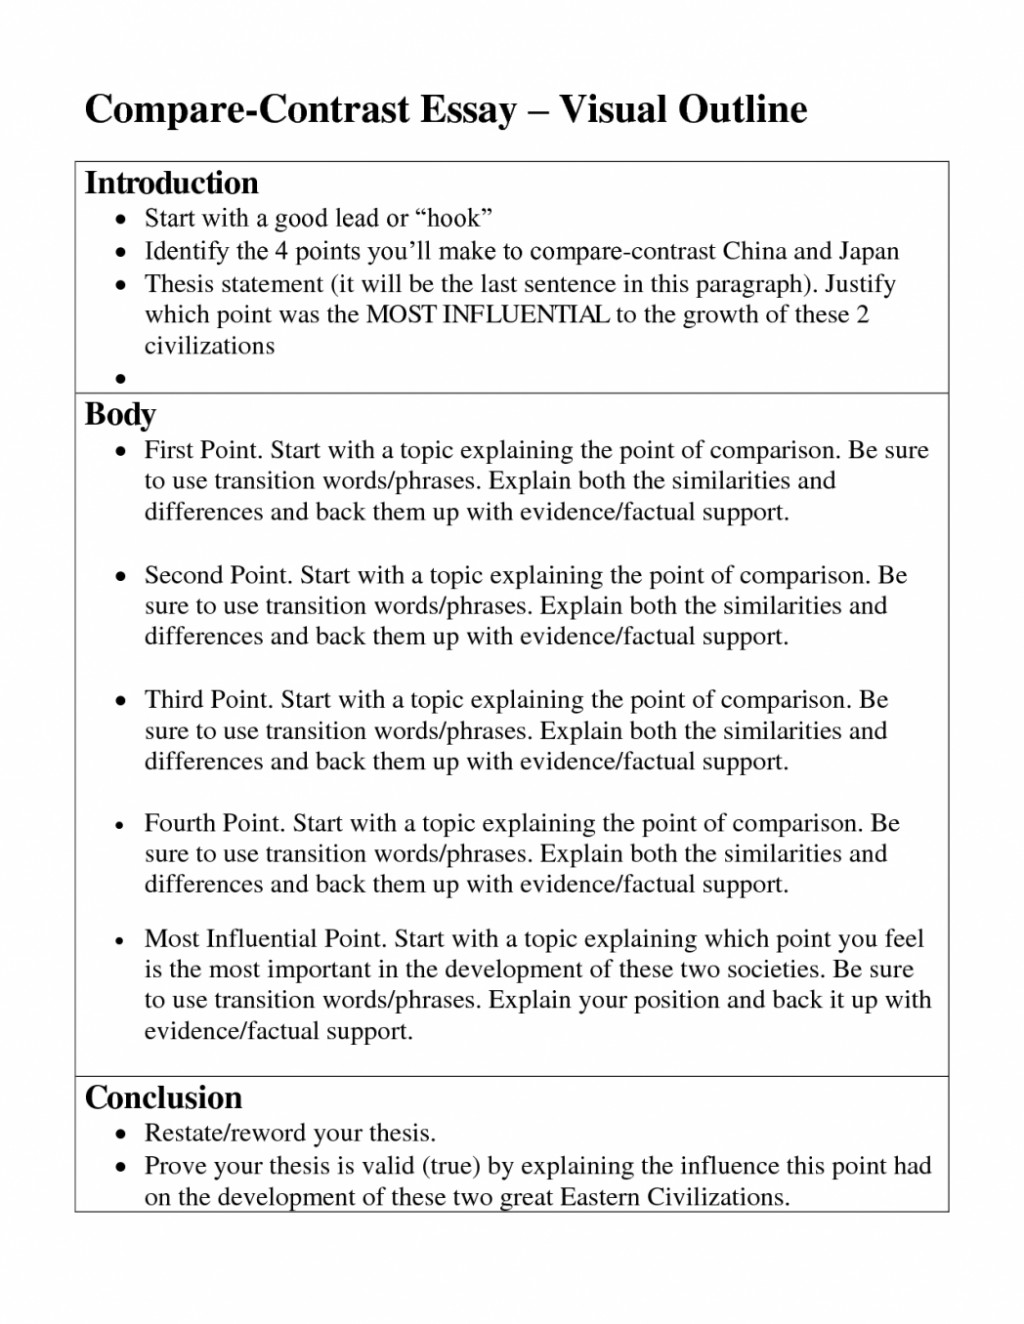 004 Compare And Contrast Essay Topics For High School Students English College Pdf Research Paper 1048x1356 Comparison Staggering Esl Examples Middle Large